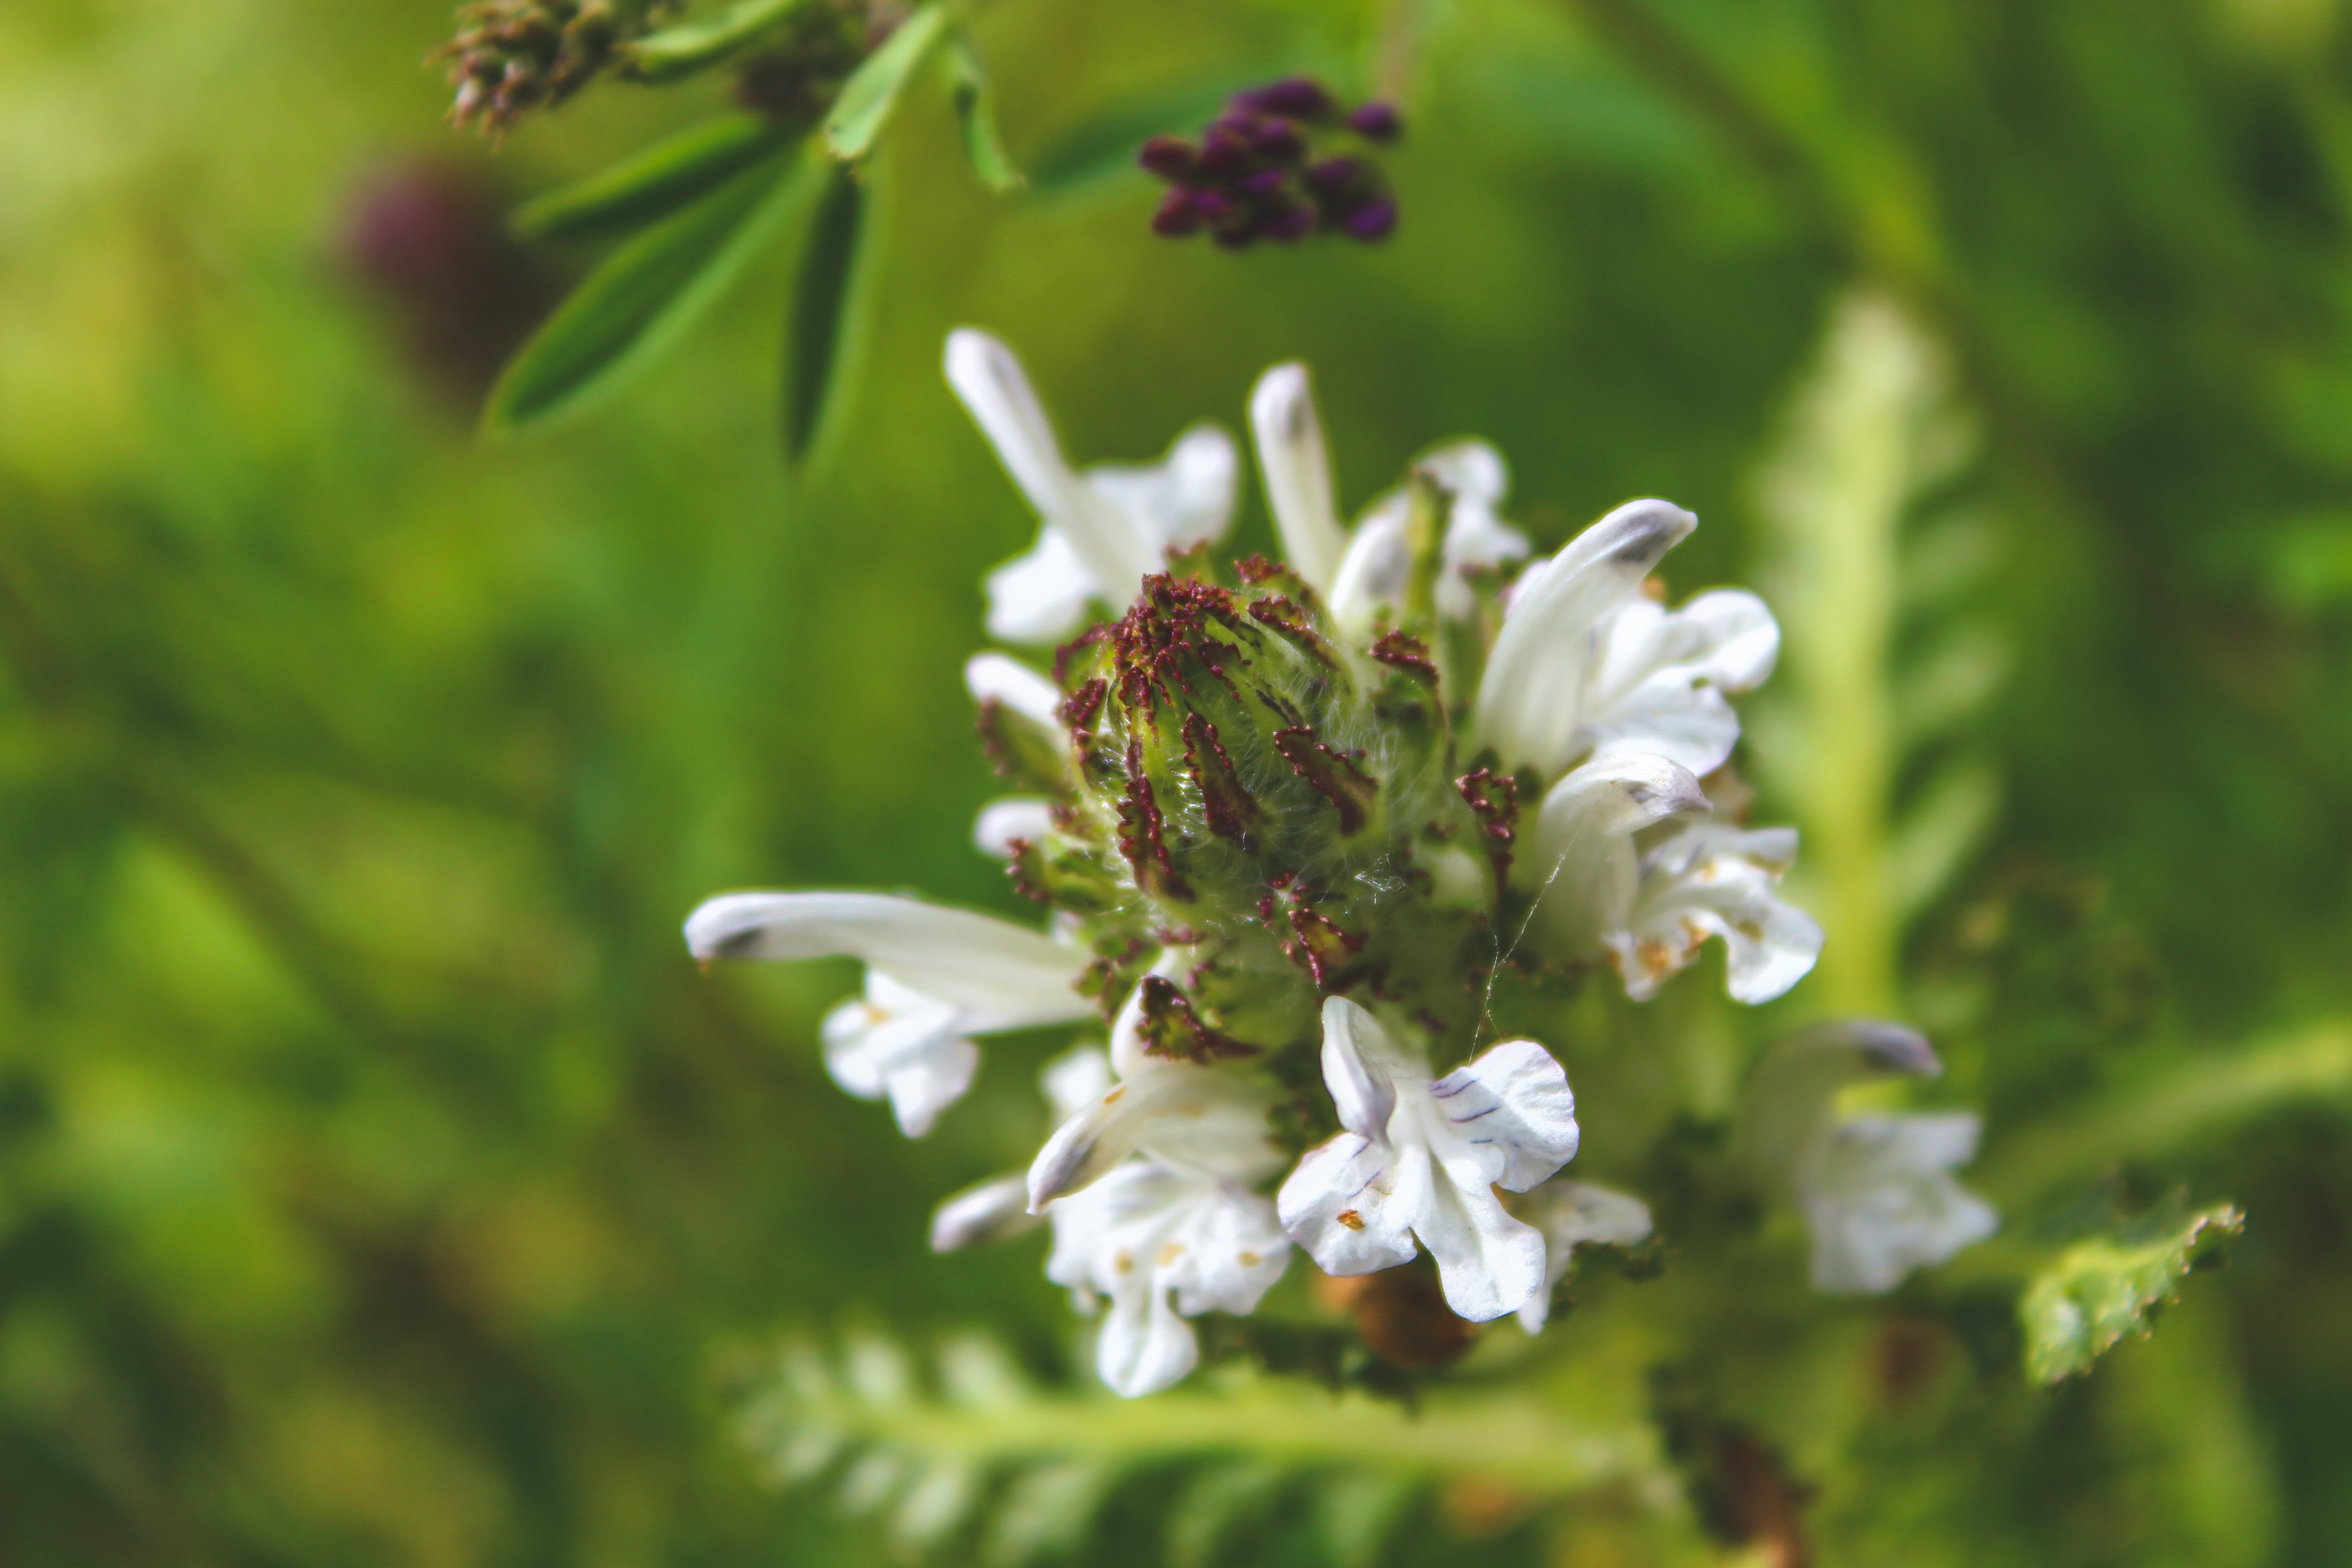 Focus Photography of White Flowers